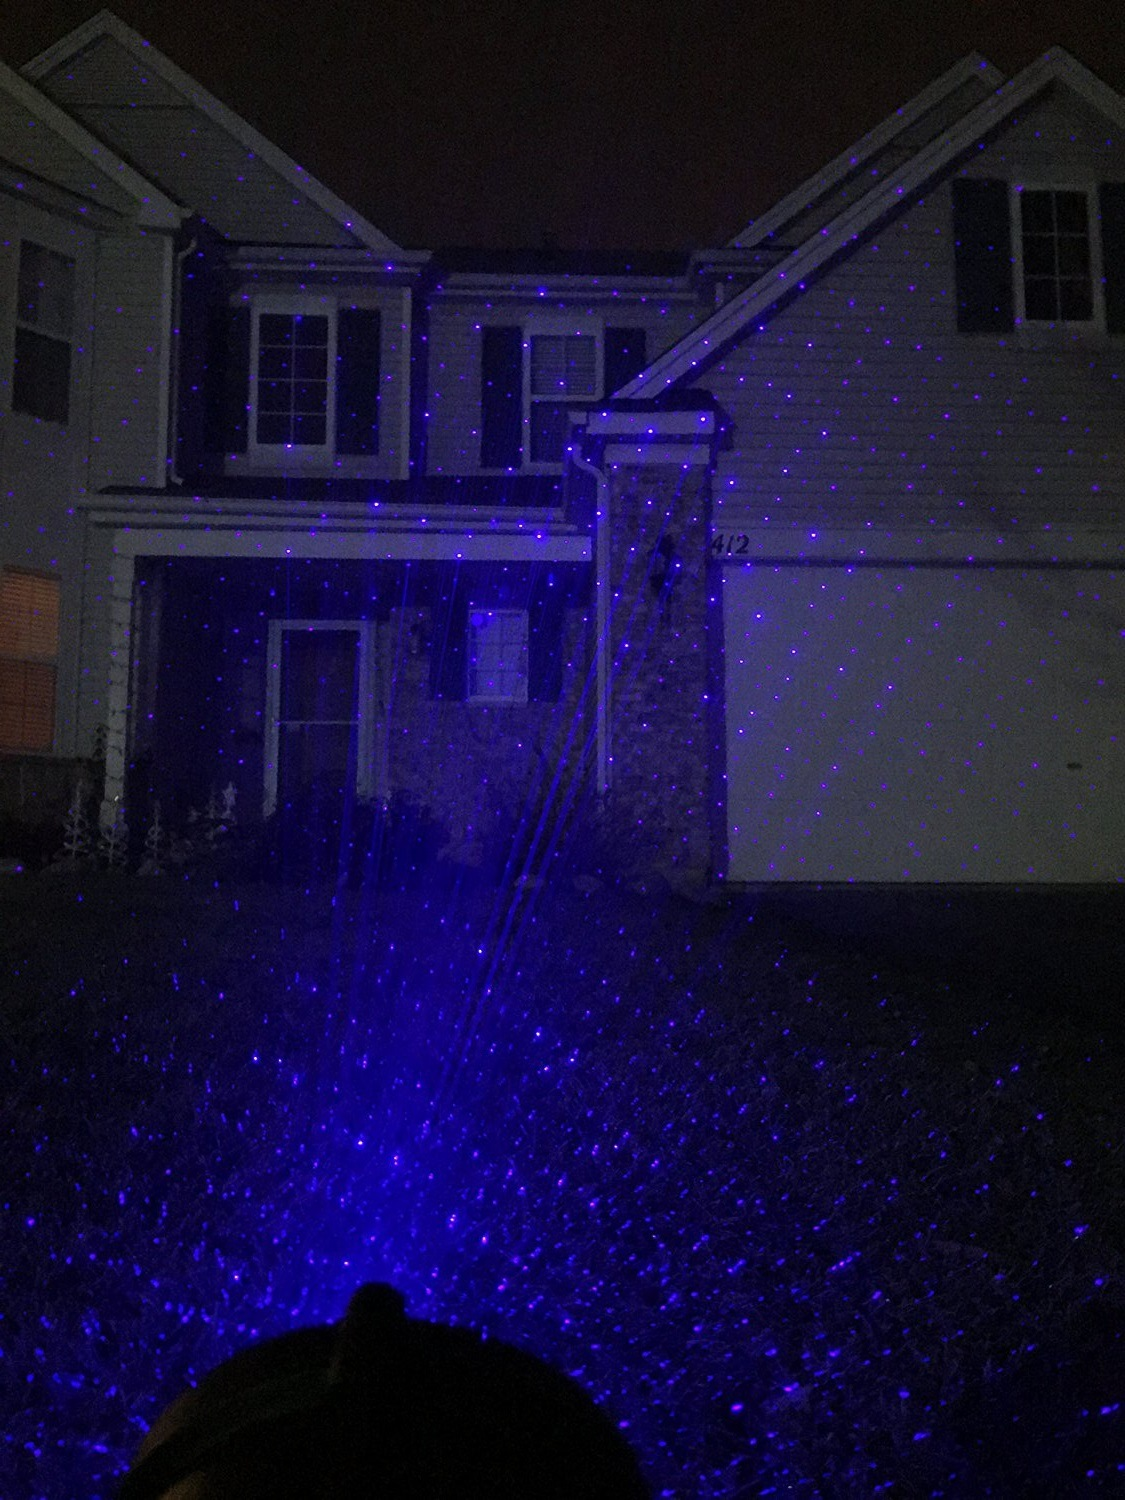 Christmas Ligths Outdoor for New Year Decorations, Single Blue Static Garden Lights Projector